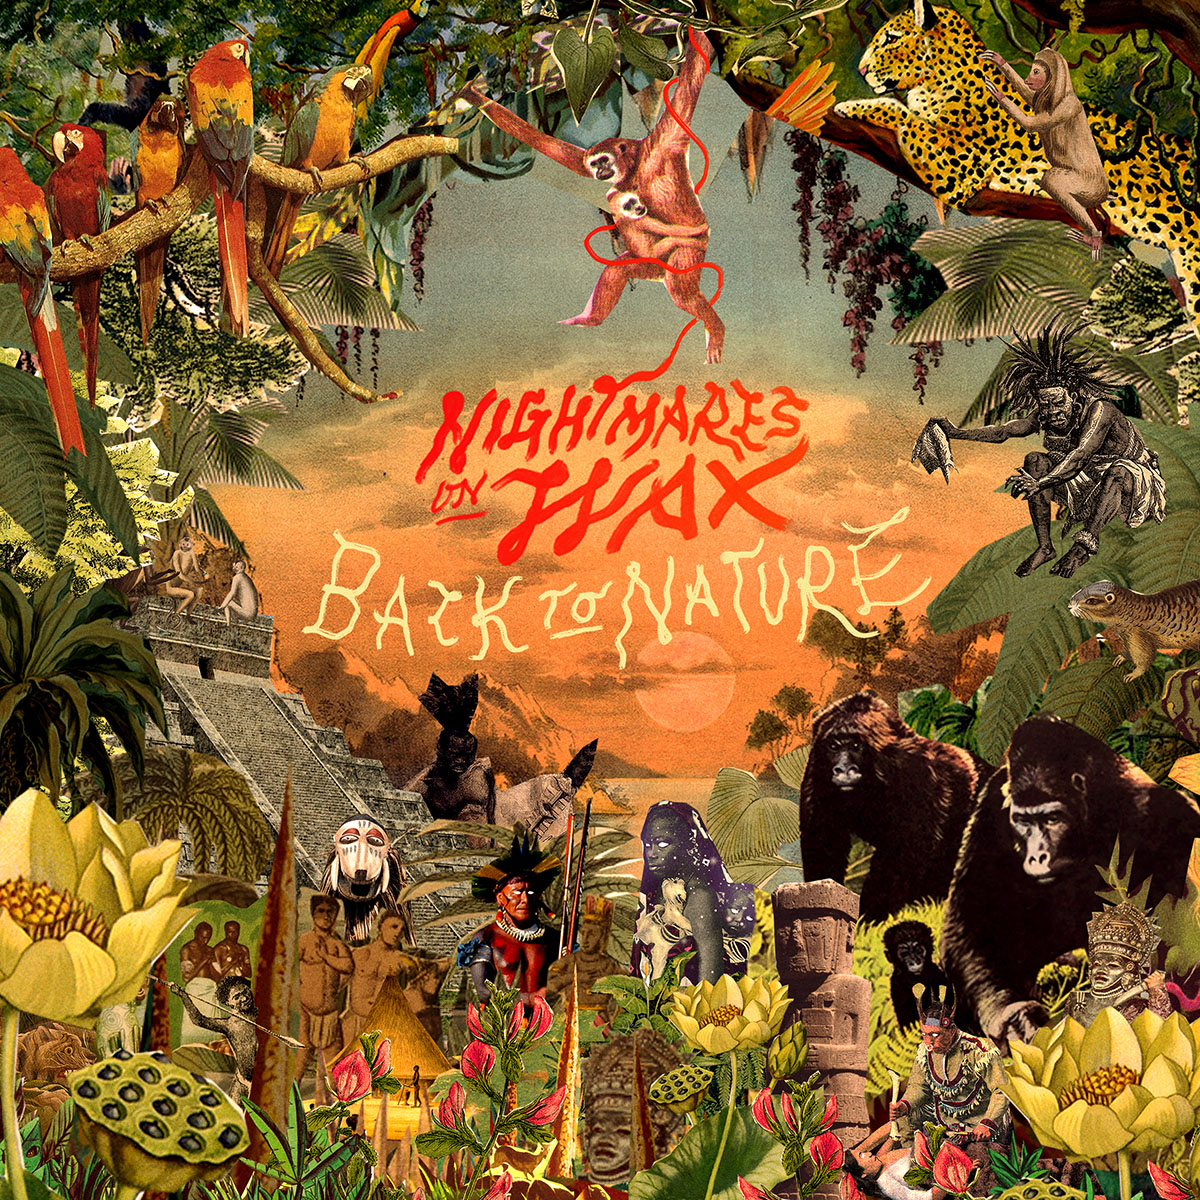 Nightmares on Wax - Back To Nature | SOTD Musikvideo Premiere